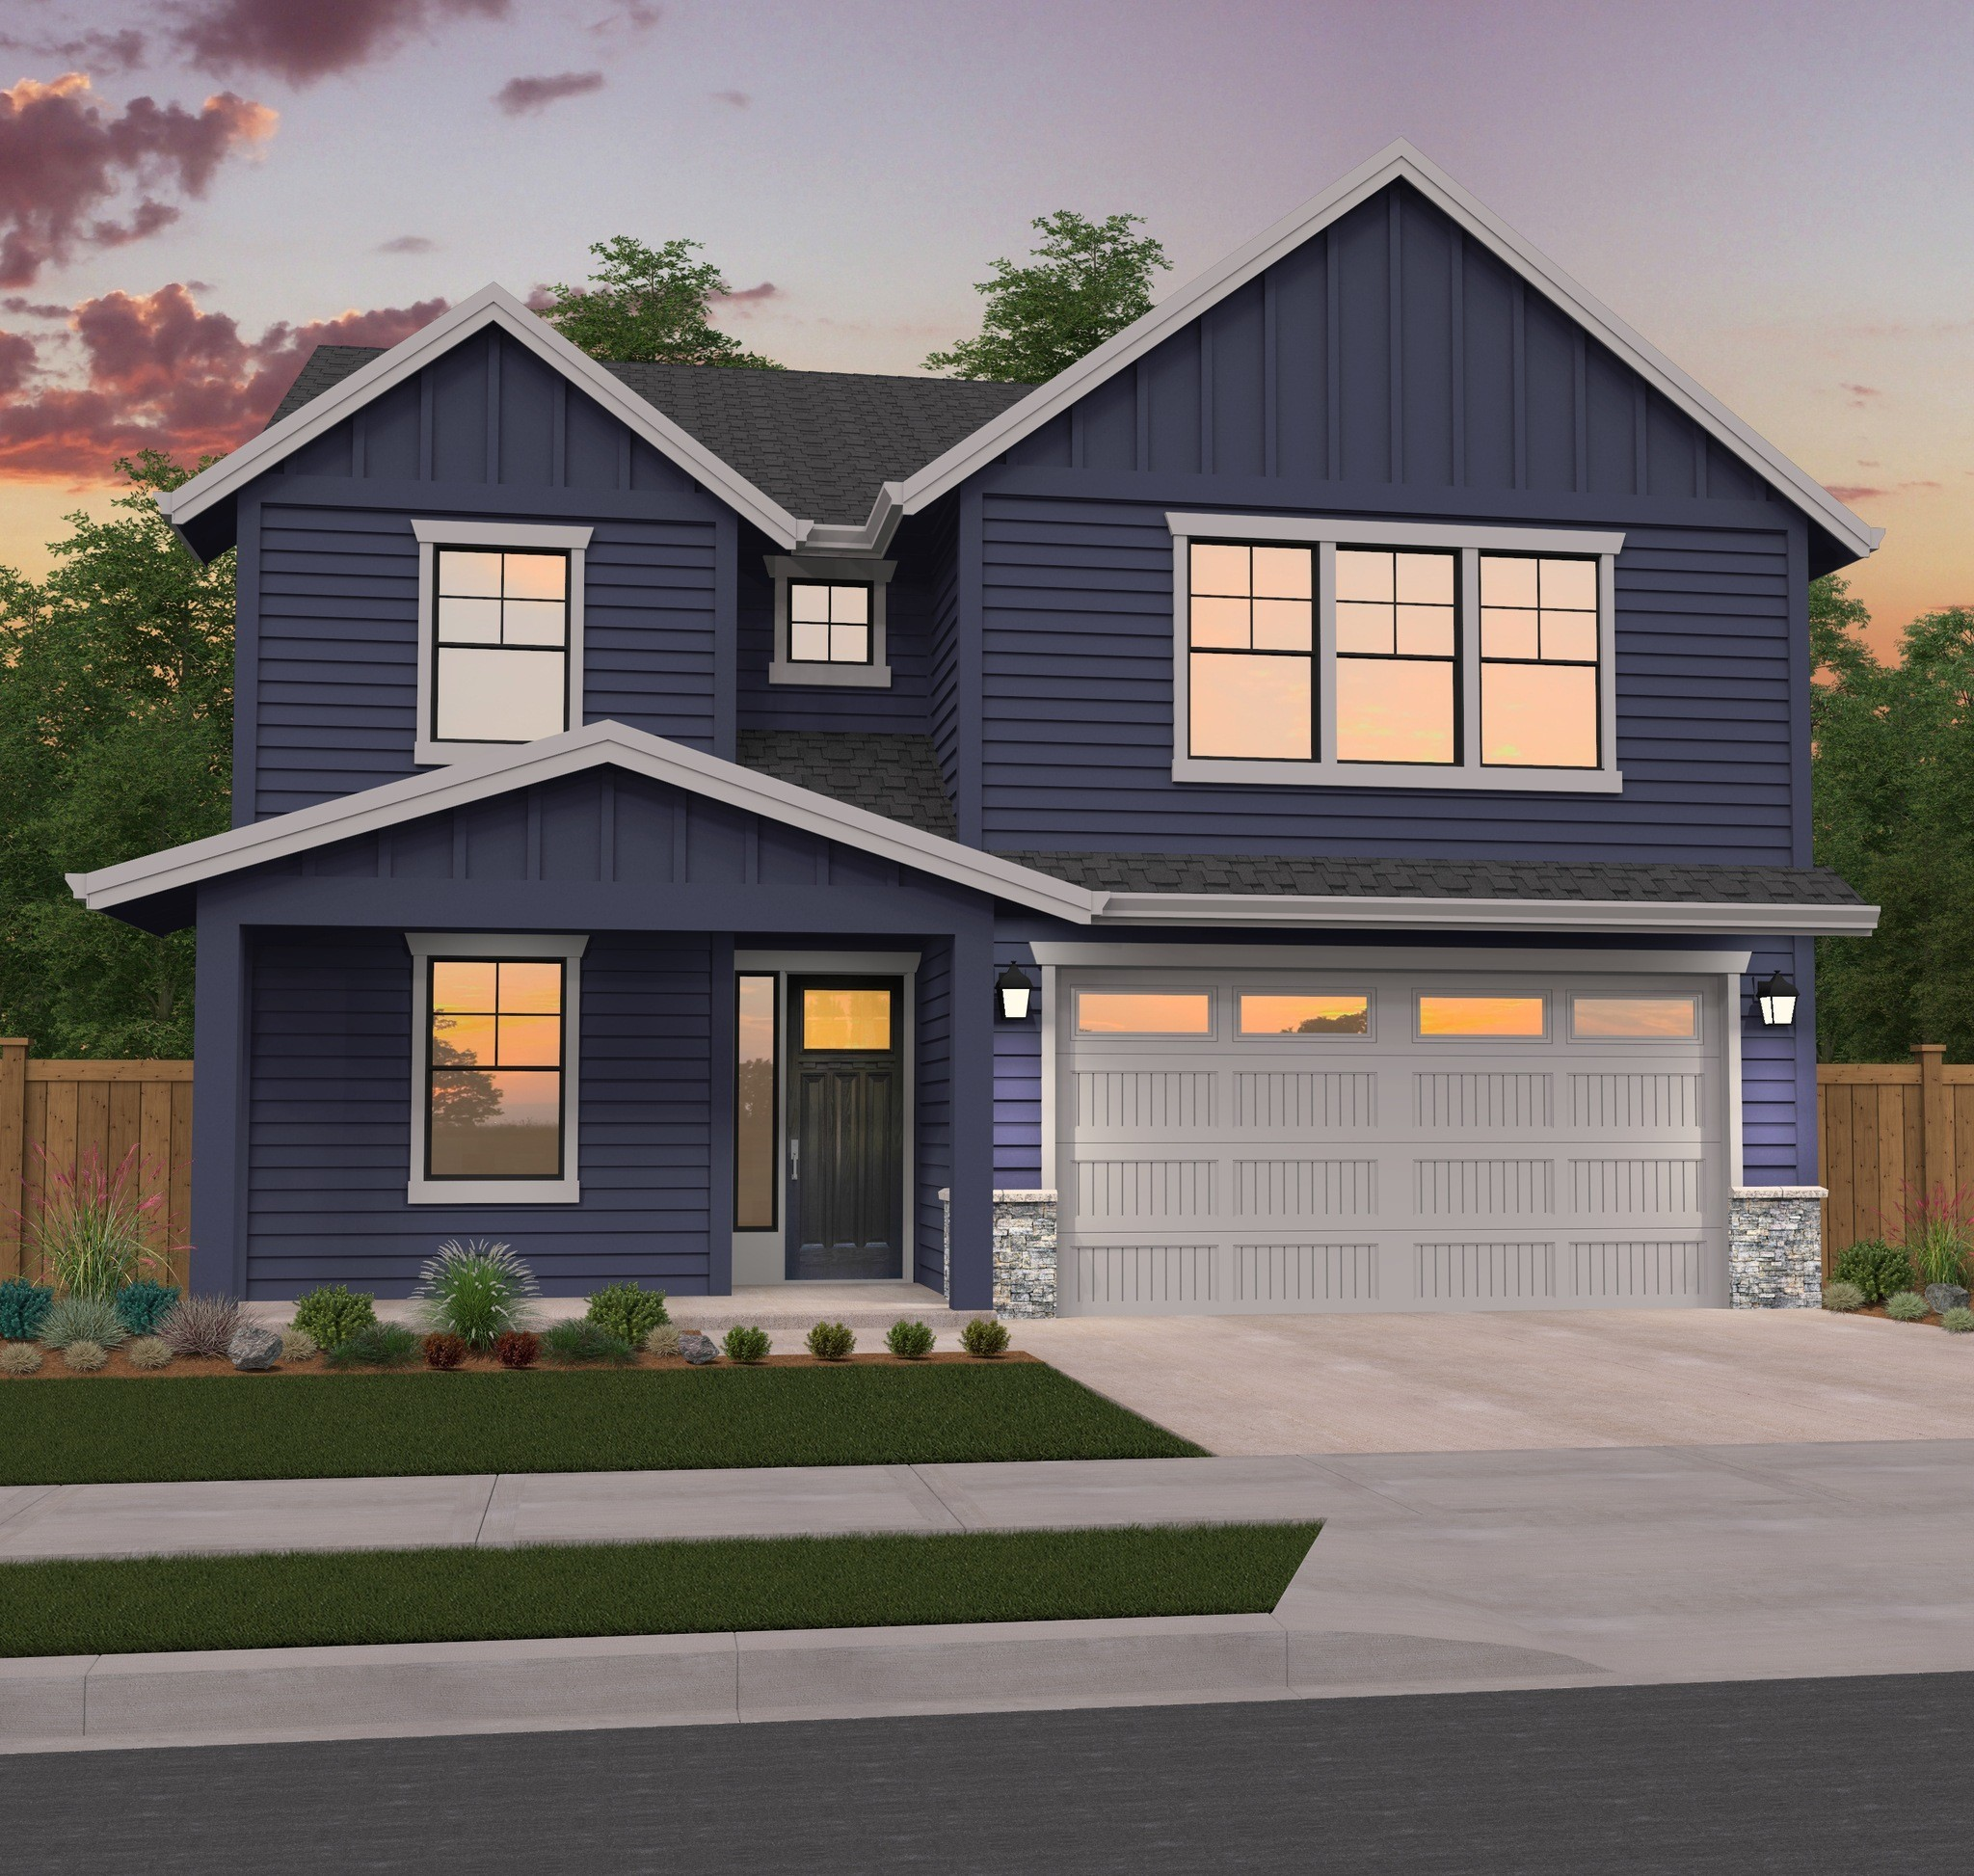 Mark Stewart Home Design: Affordable Craftsman House Plan By Mark Stewart